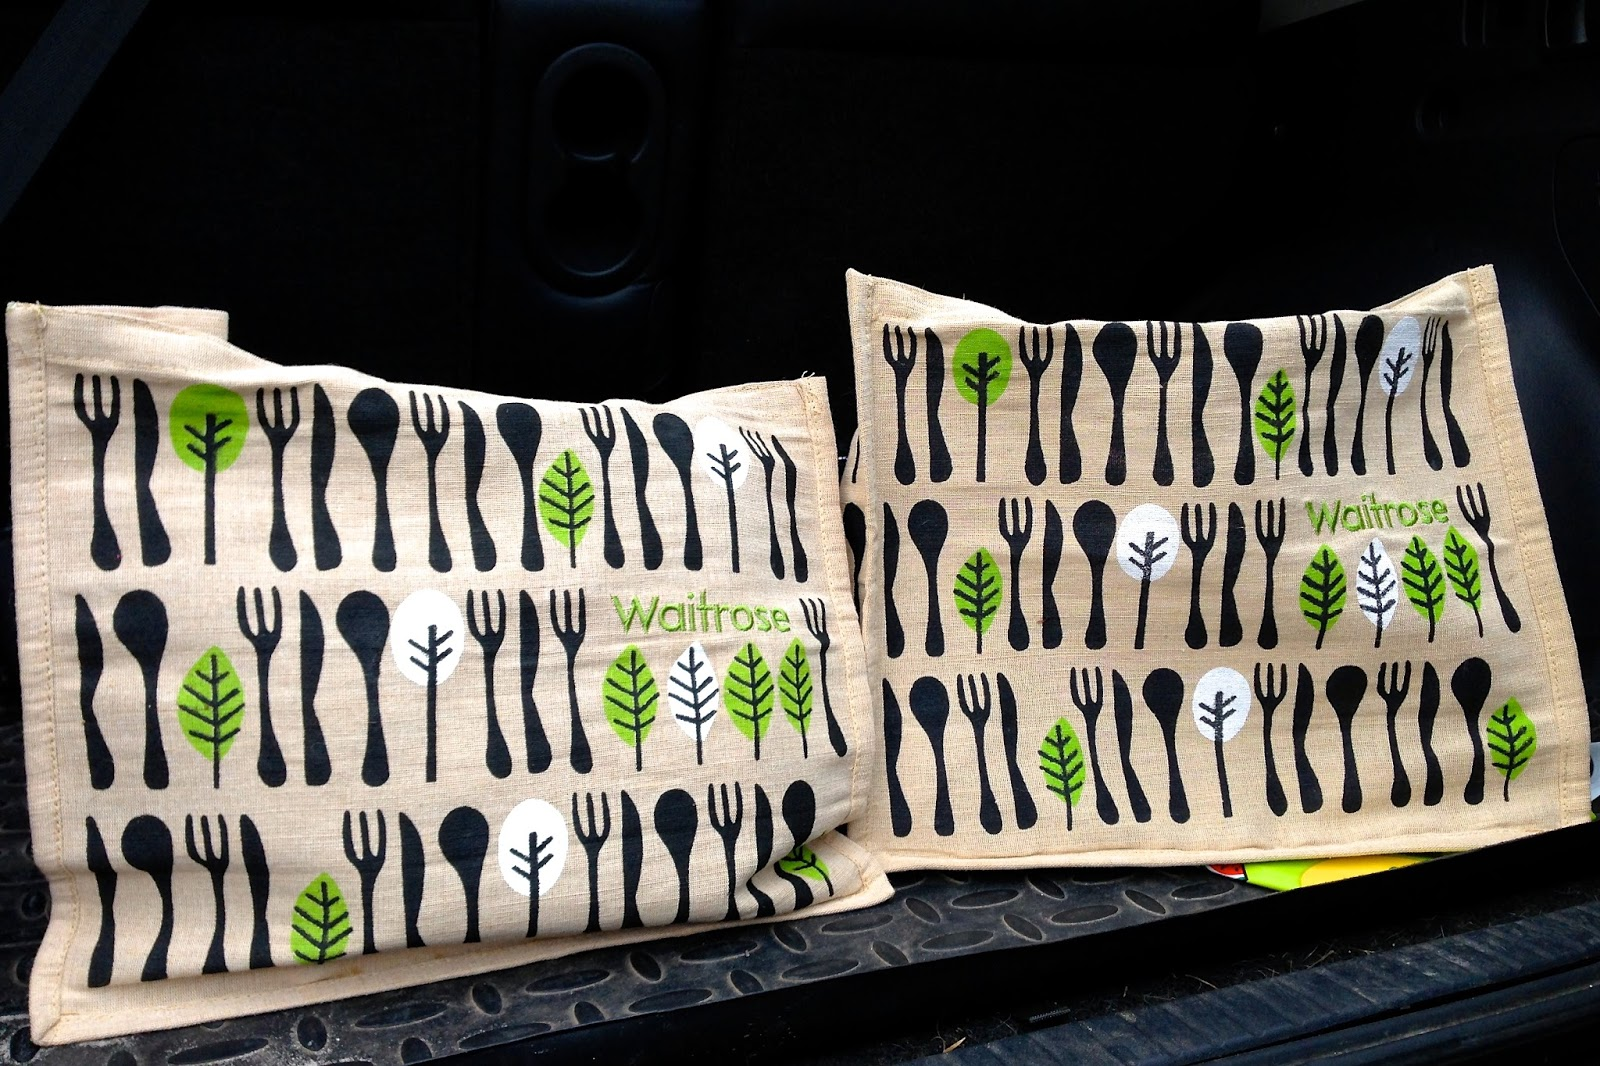 reusable shopping bags from Waitrose